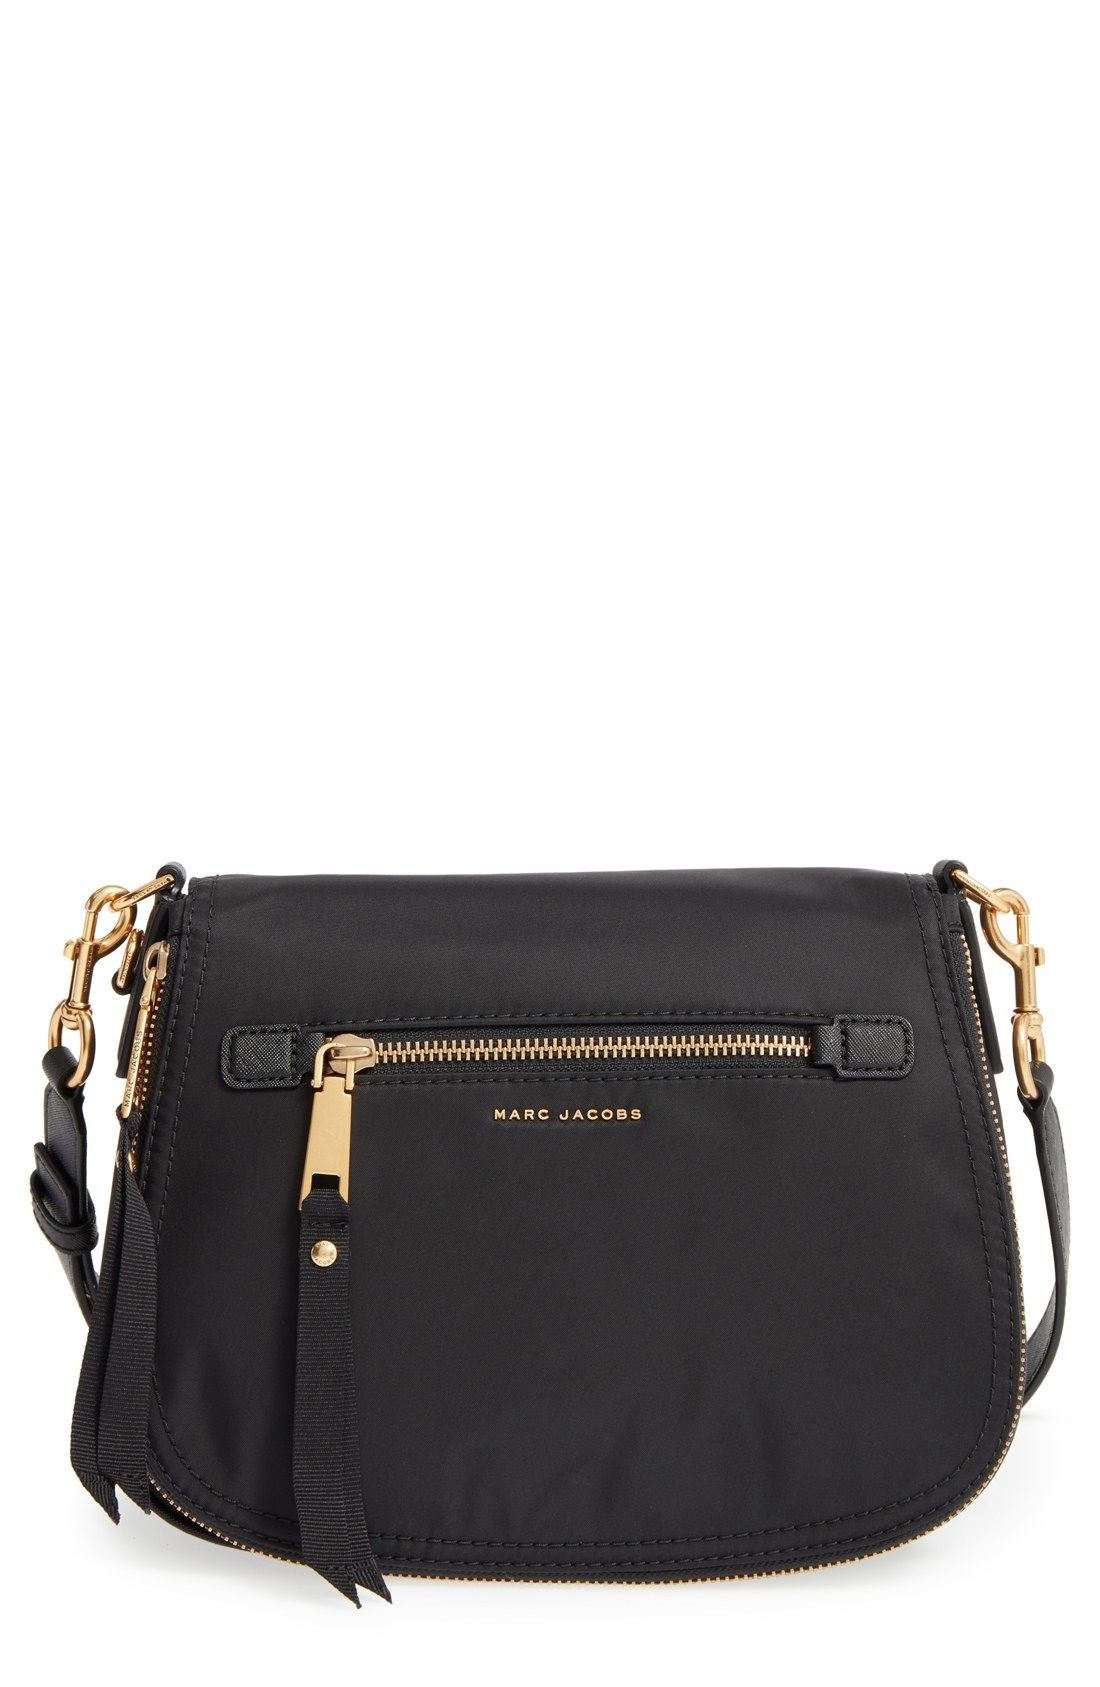 41080b65d16e MARC JACOBS Trooper Nomad Nylon Saddle Bag available at  Nordstrom ...